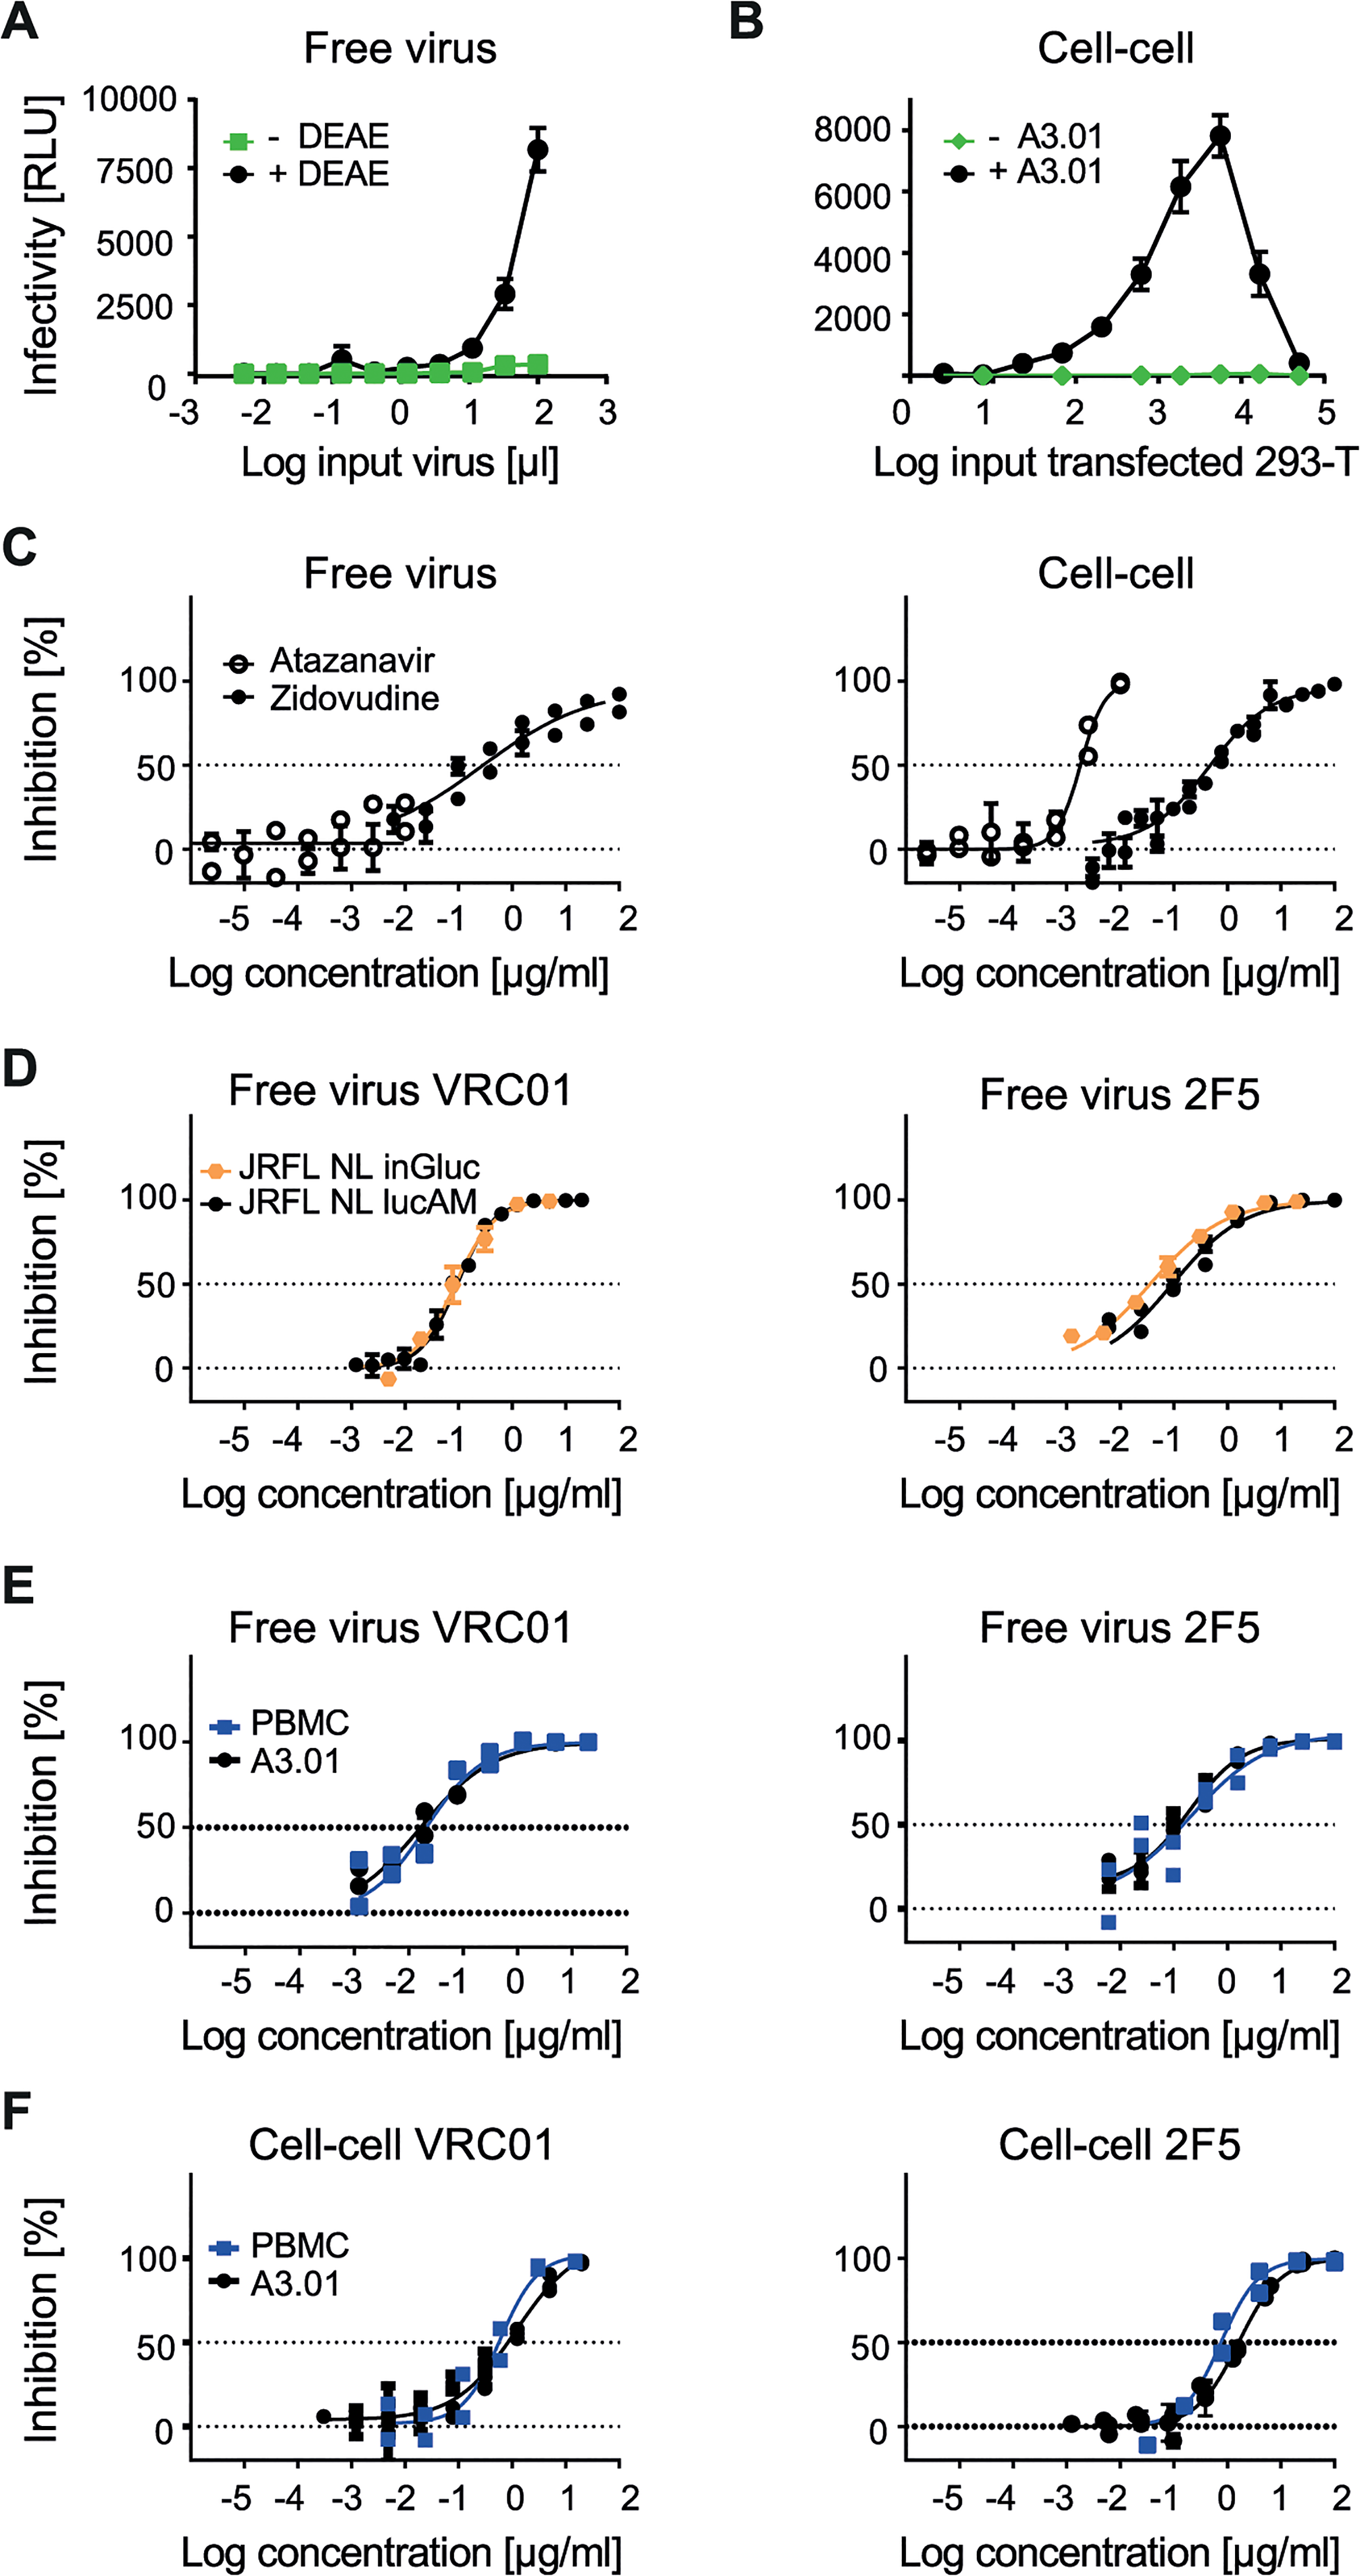 Evaluating A3.01-CCR5 T cell-based free virus and cell-cell transmission.